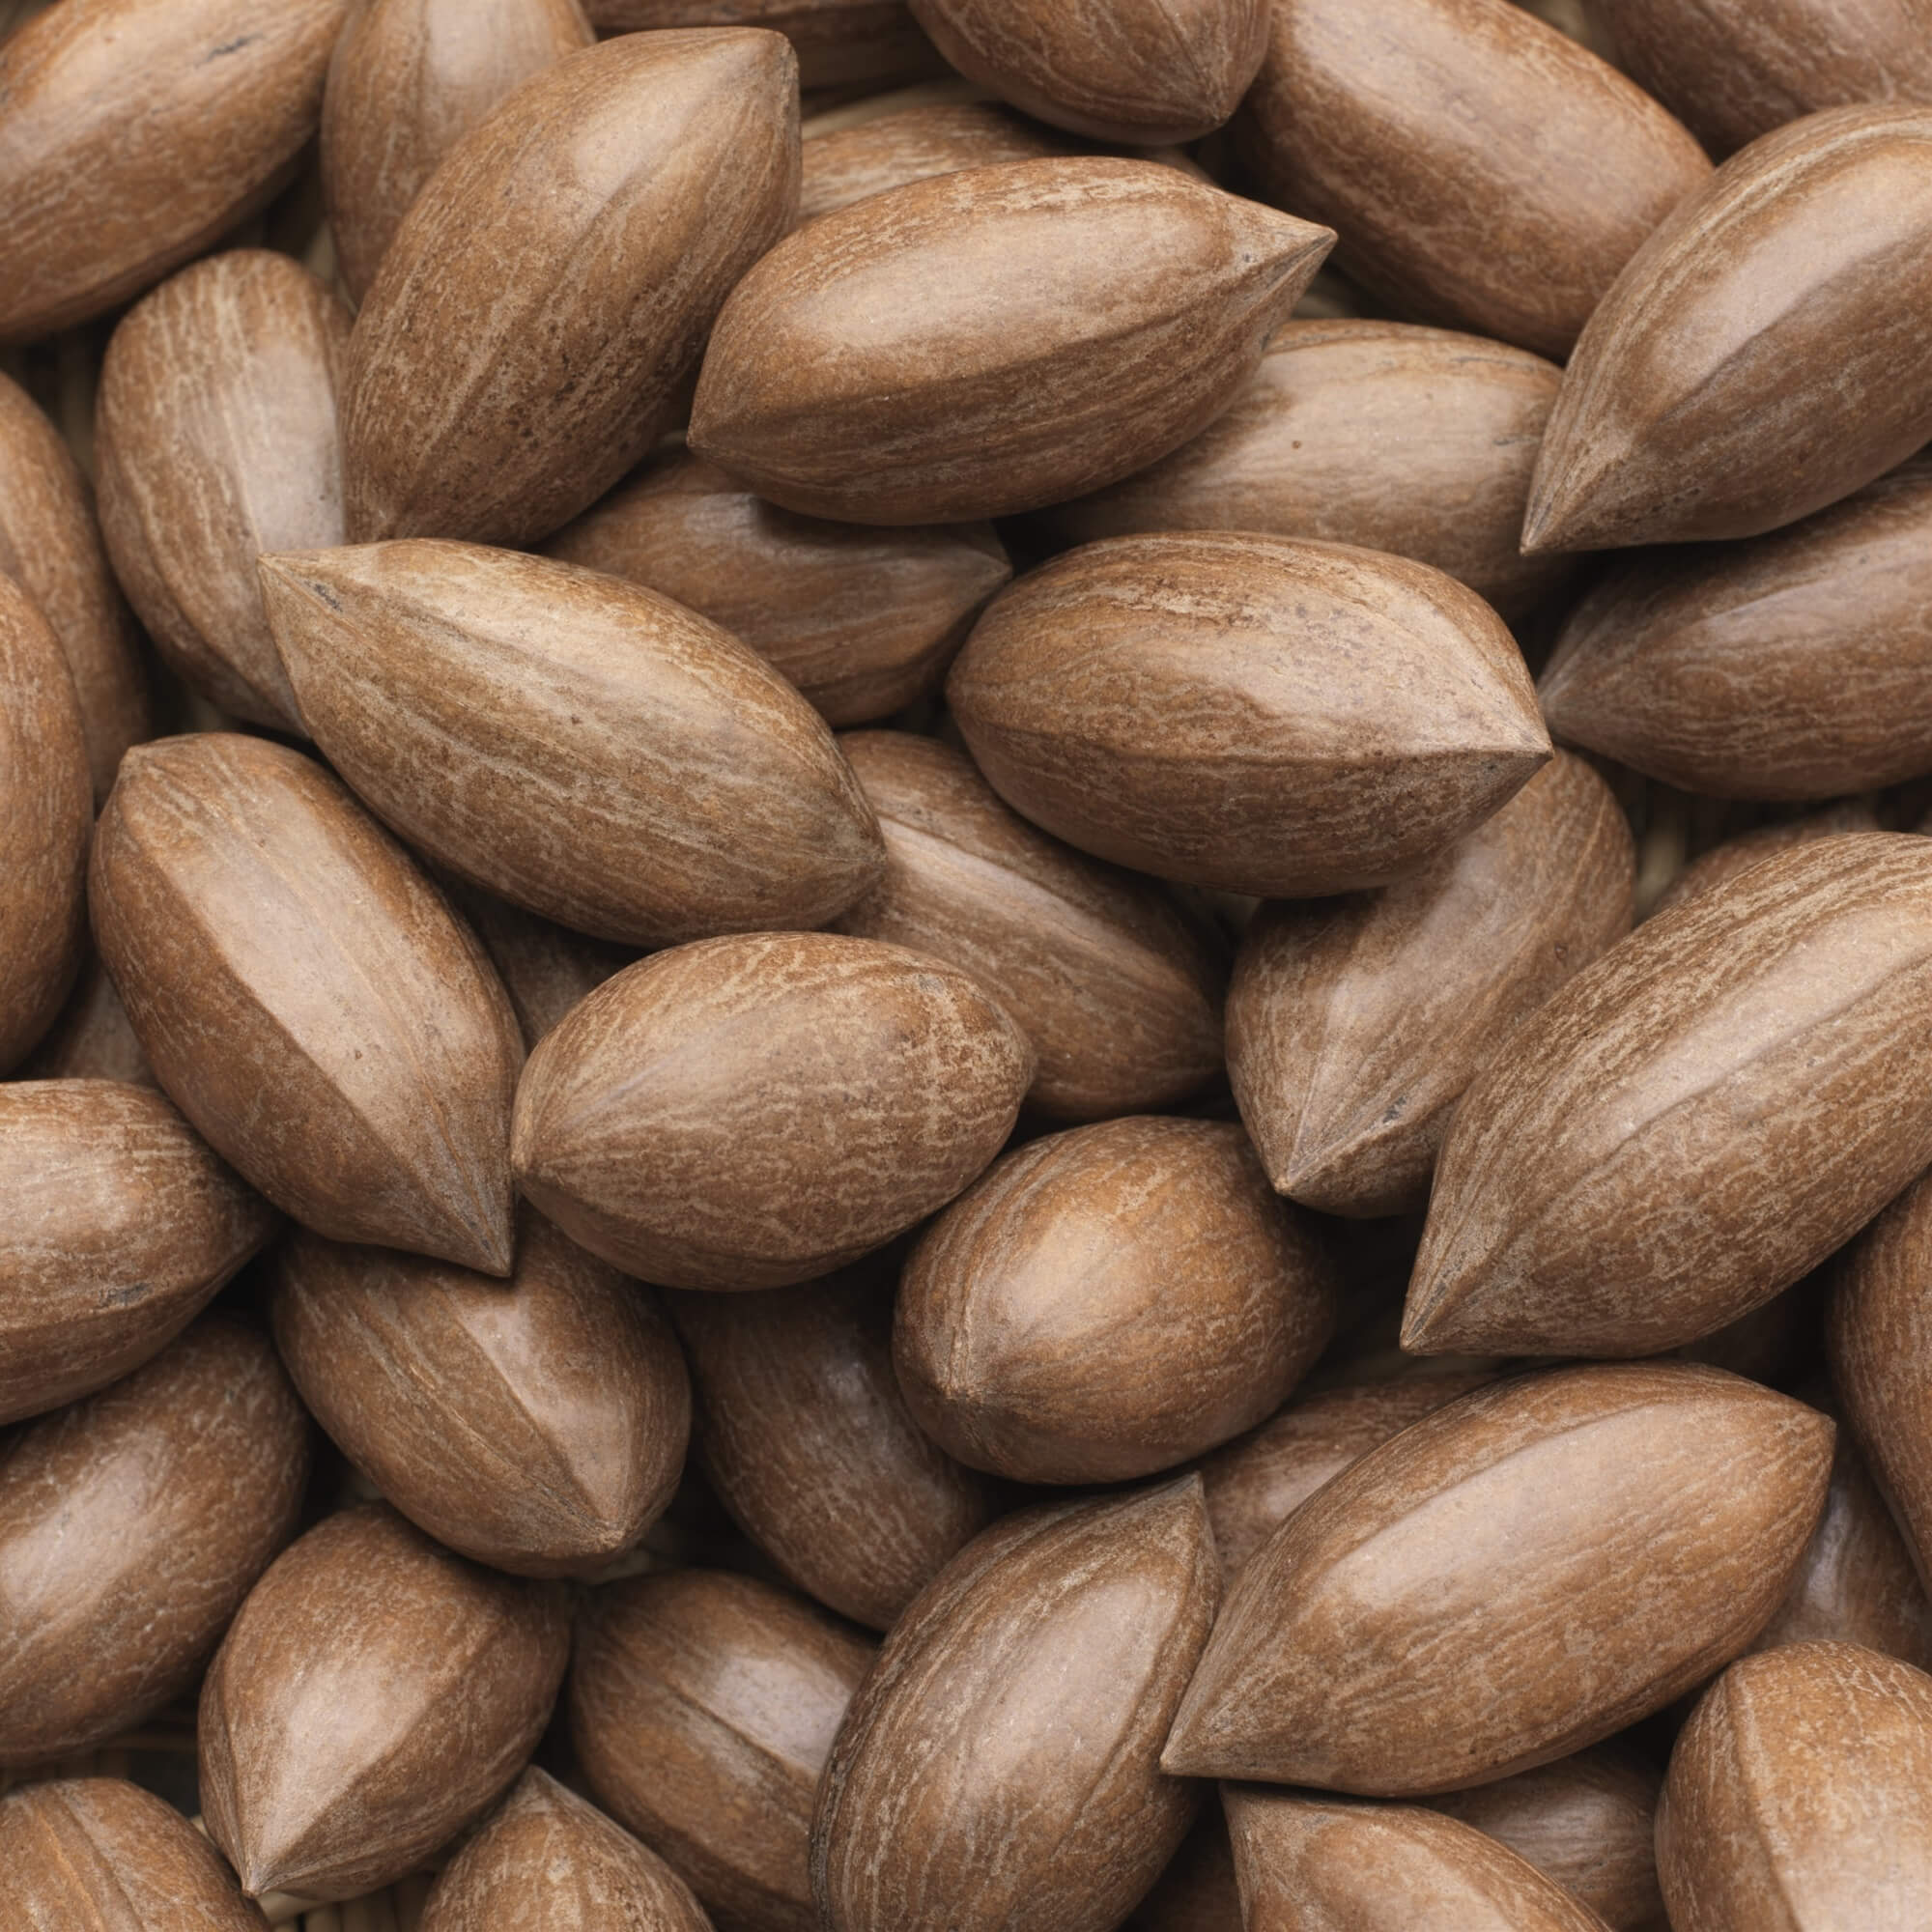 Pecan Nuts - A Pecan Nut is an edible nut encased in a brown shell with a tough outer green coat. They are mainly grown in Georgia, Texas, New Mexico and Oklahoma.